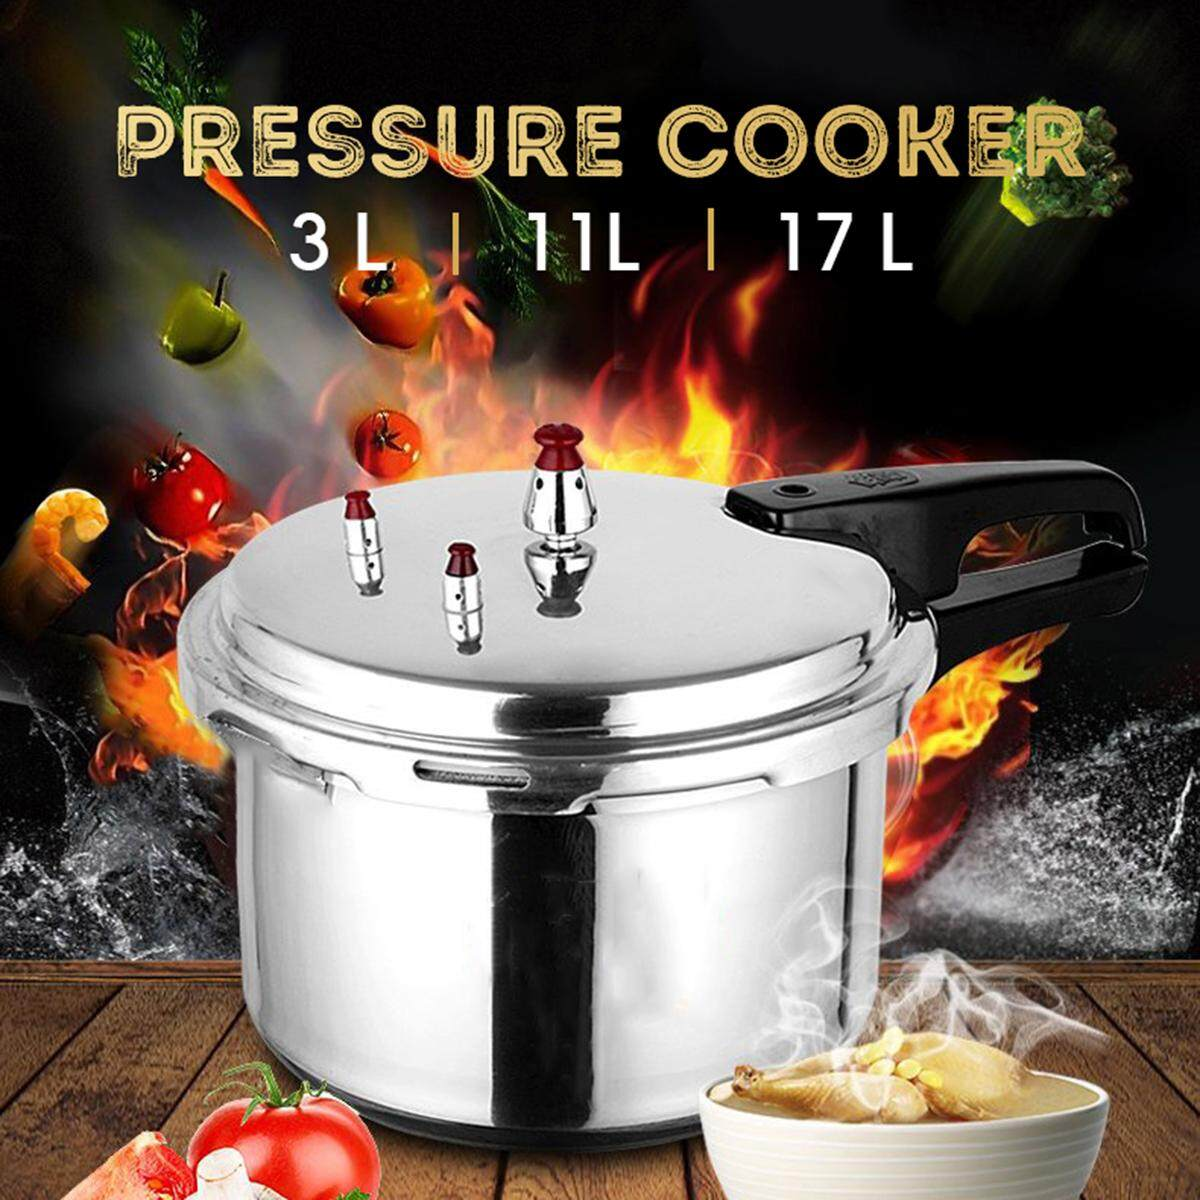 28cm Pressure Cooker Commercial Grade 304 Stainless Steel Pressure Cooker By Freebang.